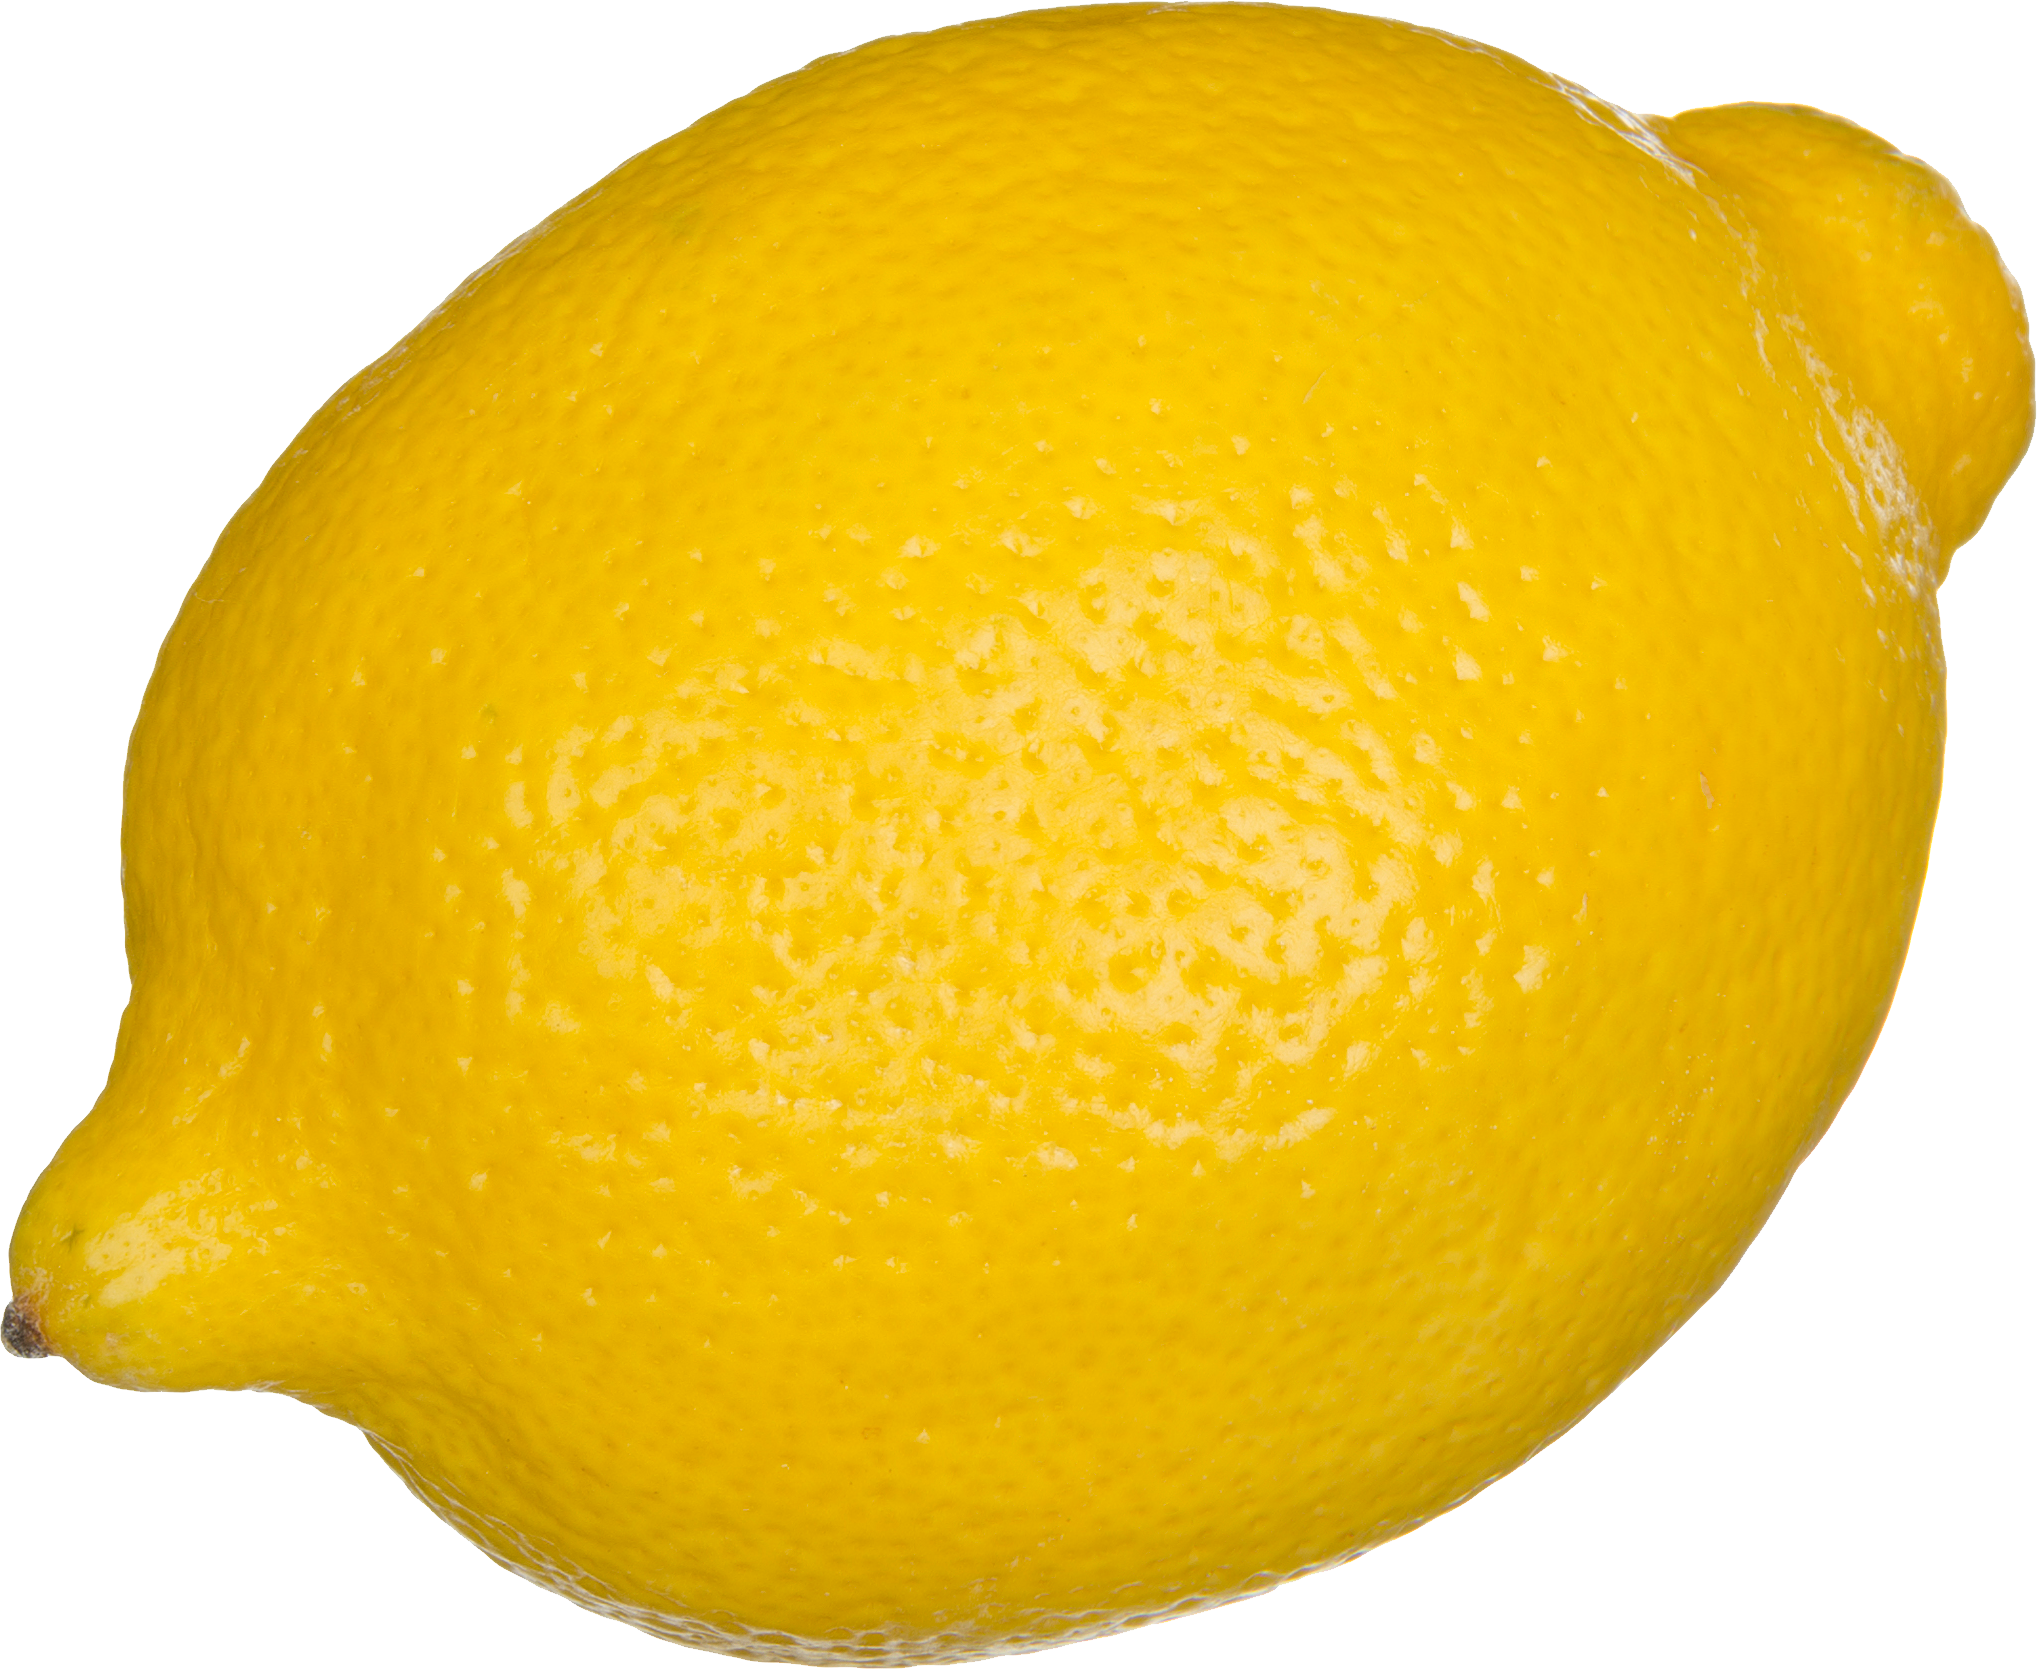 Limon vector sliced. Lemon png images free